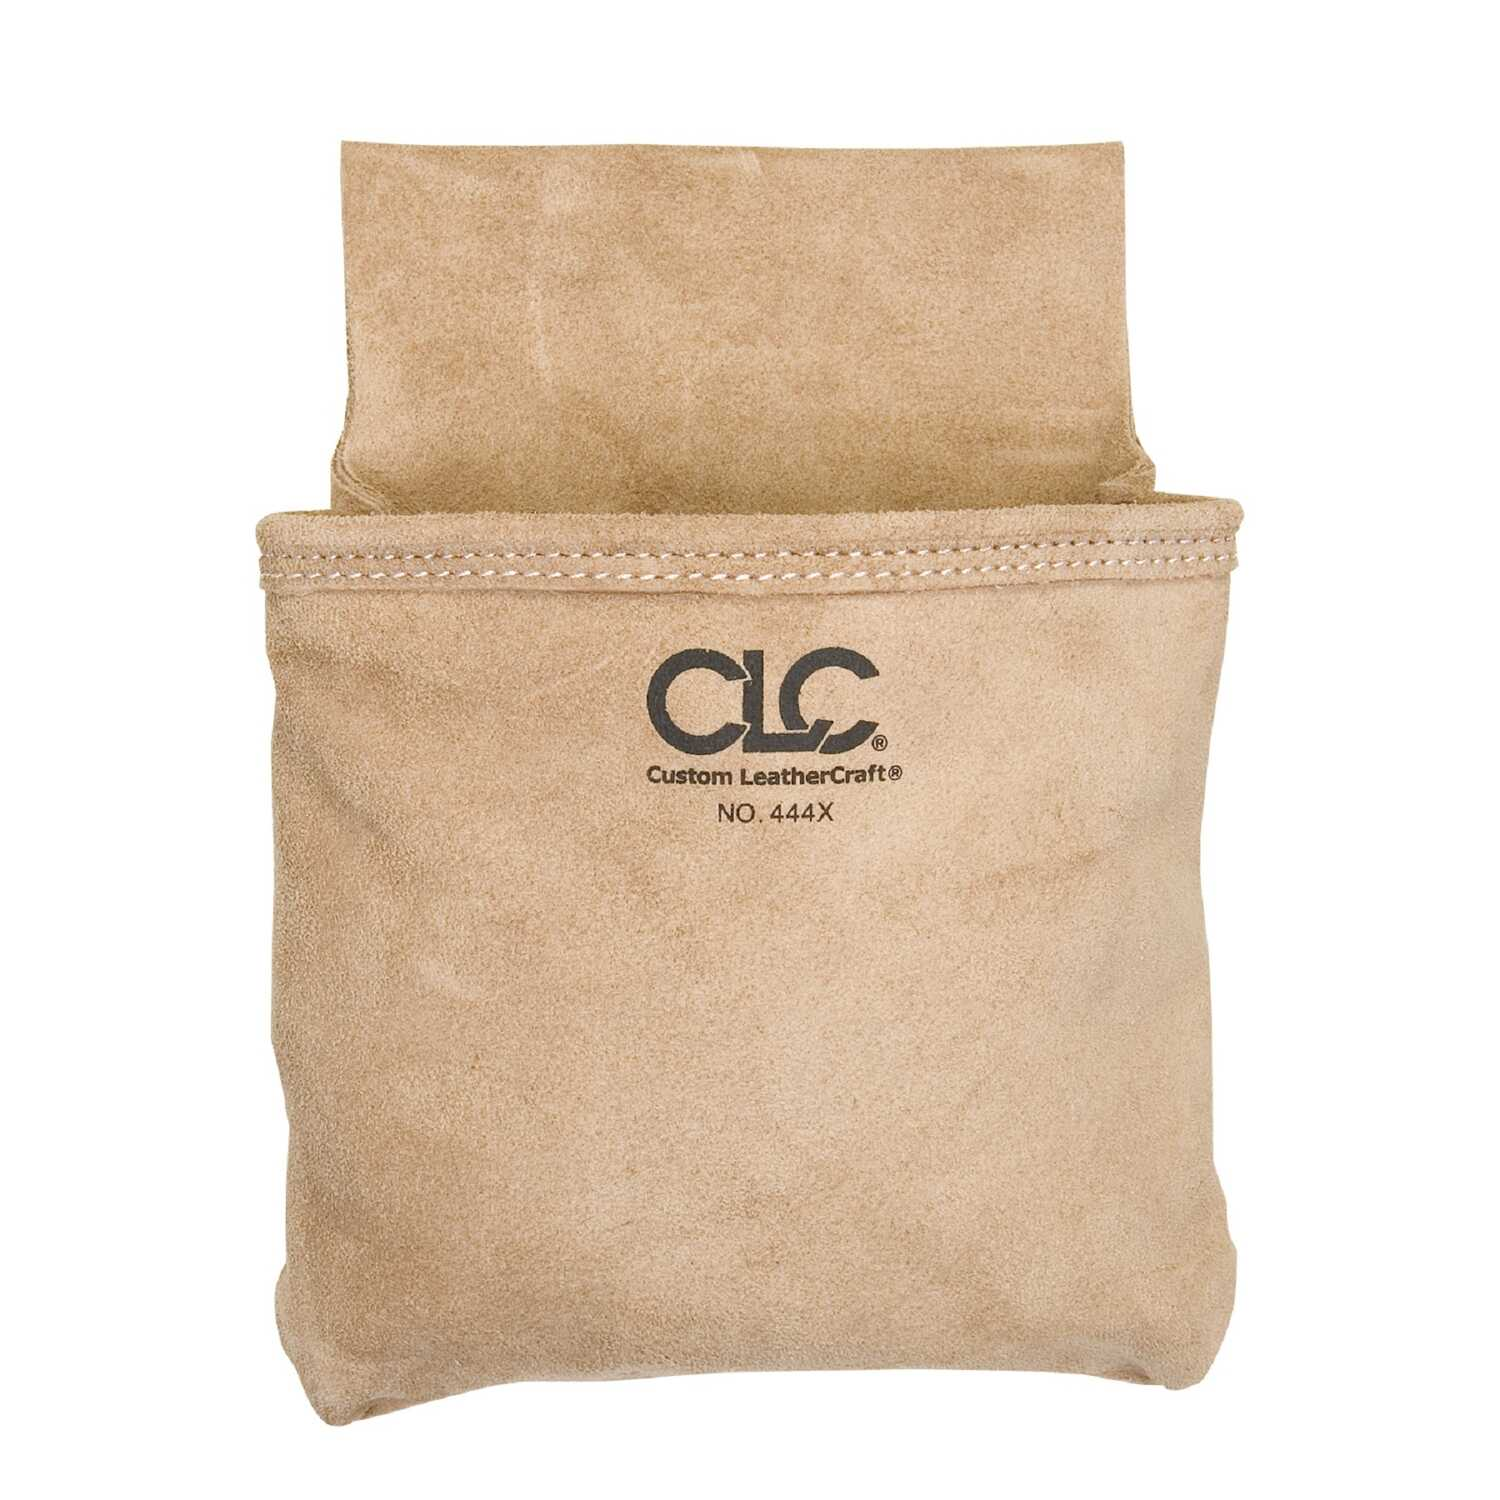 CLC  1 in. W x 12.75 in. H Suede  Tool Pouch  1 pocket Tan  1 pc.